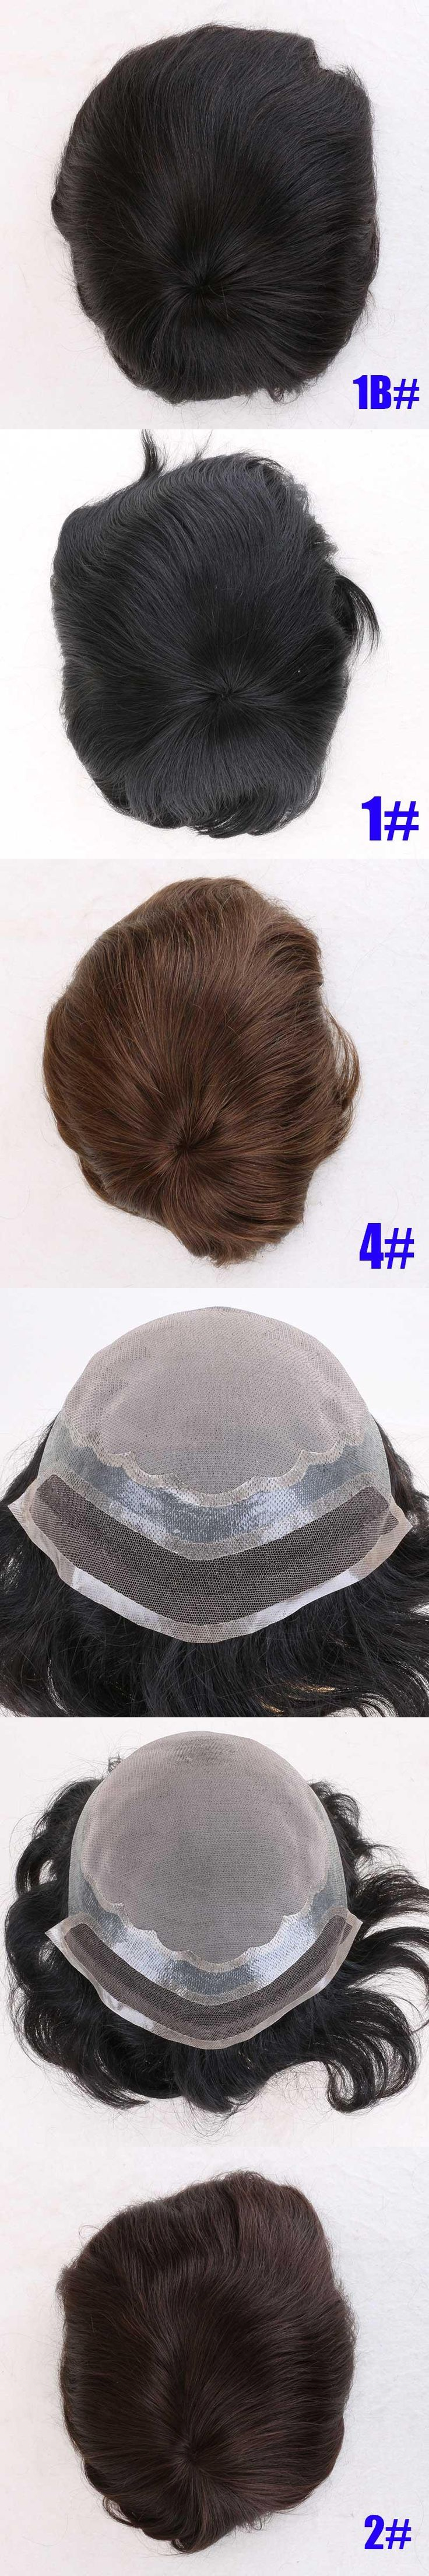 "Alicrown Hair 8""x6"" Men's Remy Human Hair Toupee Bleached Knots Swiss Lace In Front Mono Lace With Transparent Thin Skin Around"